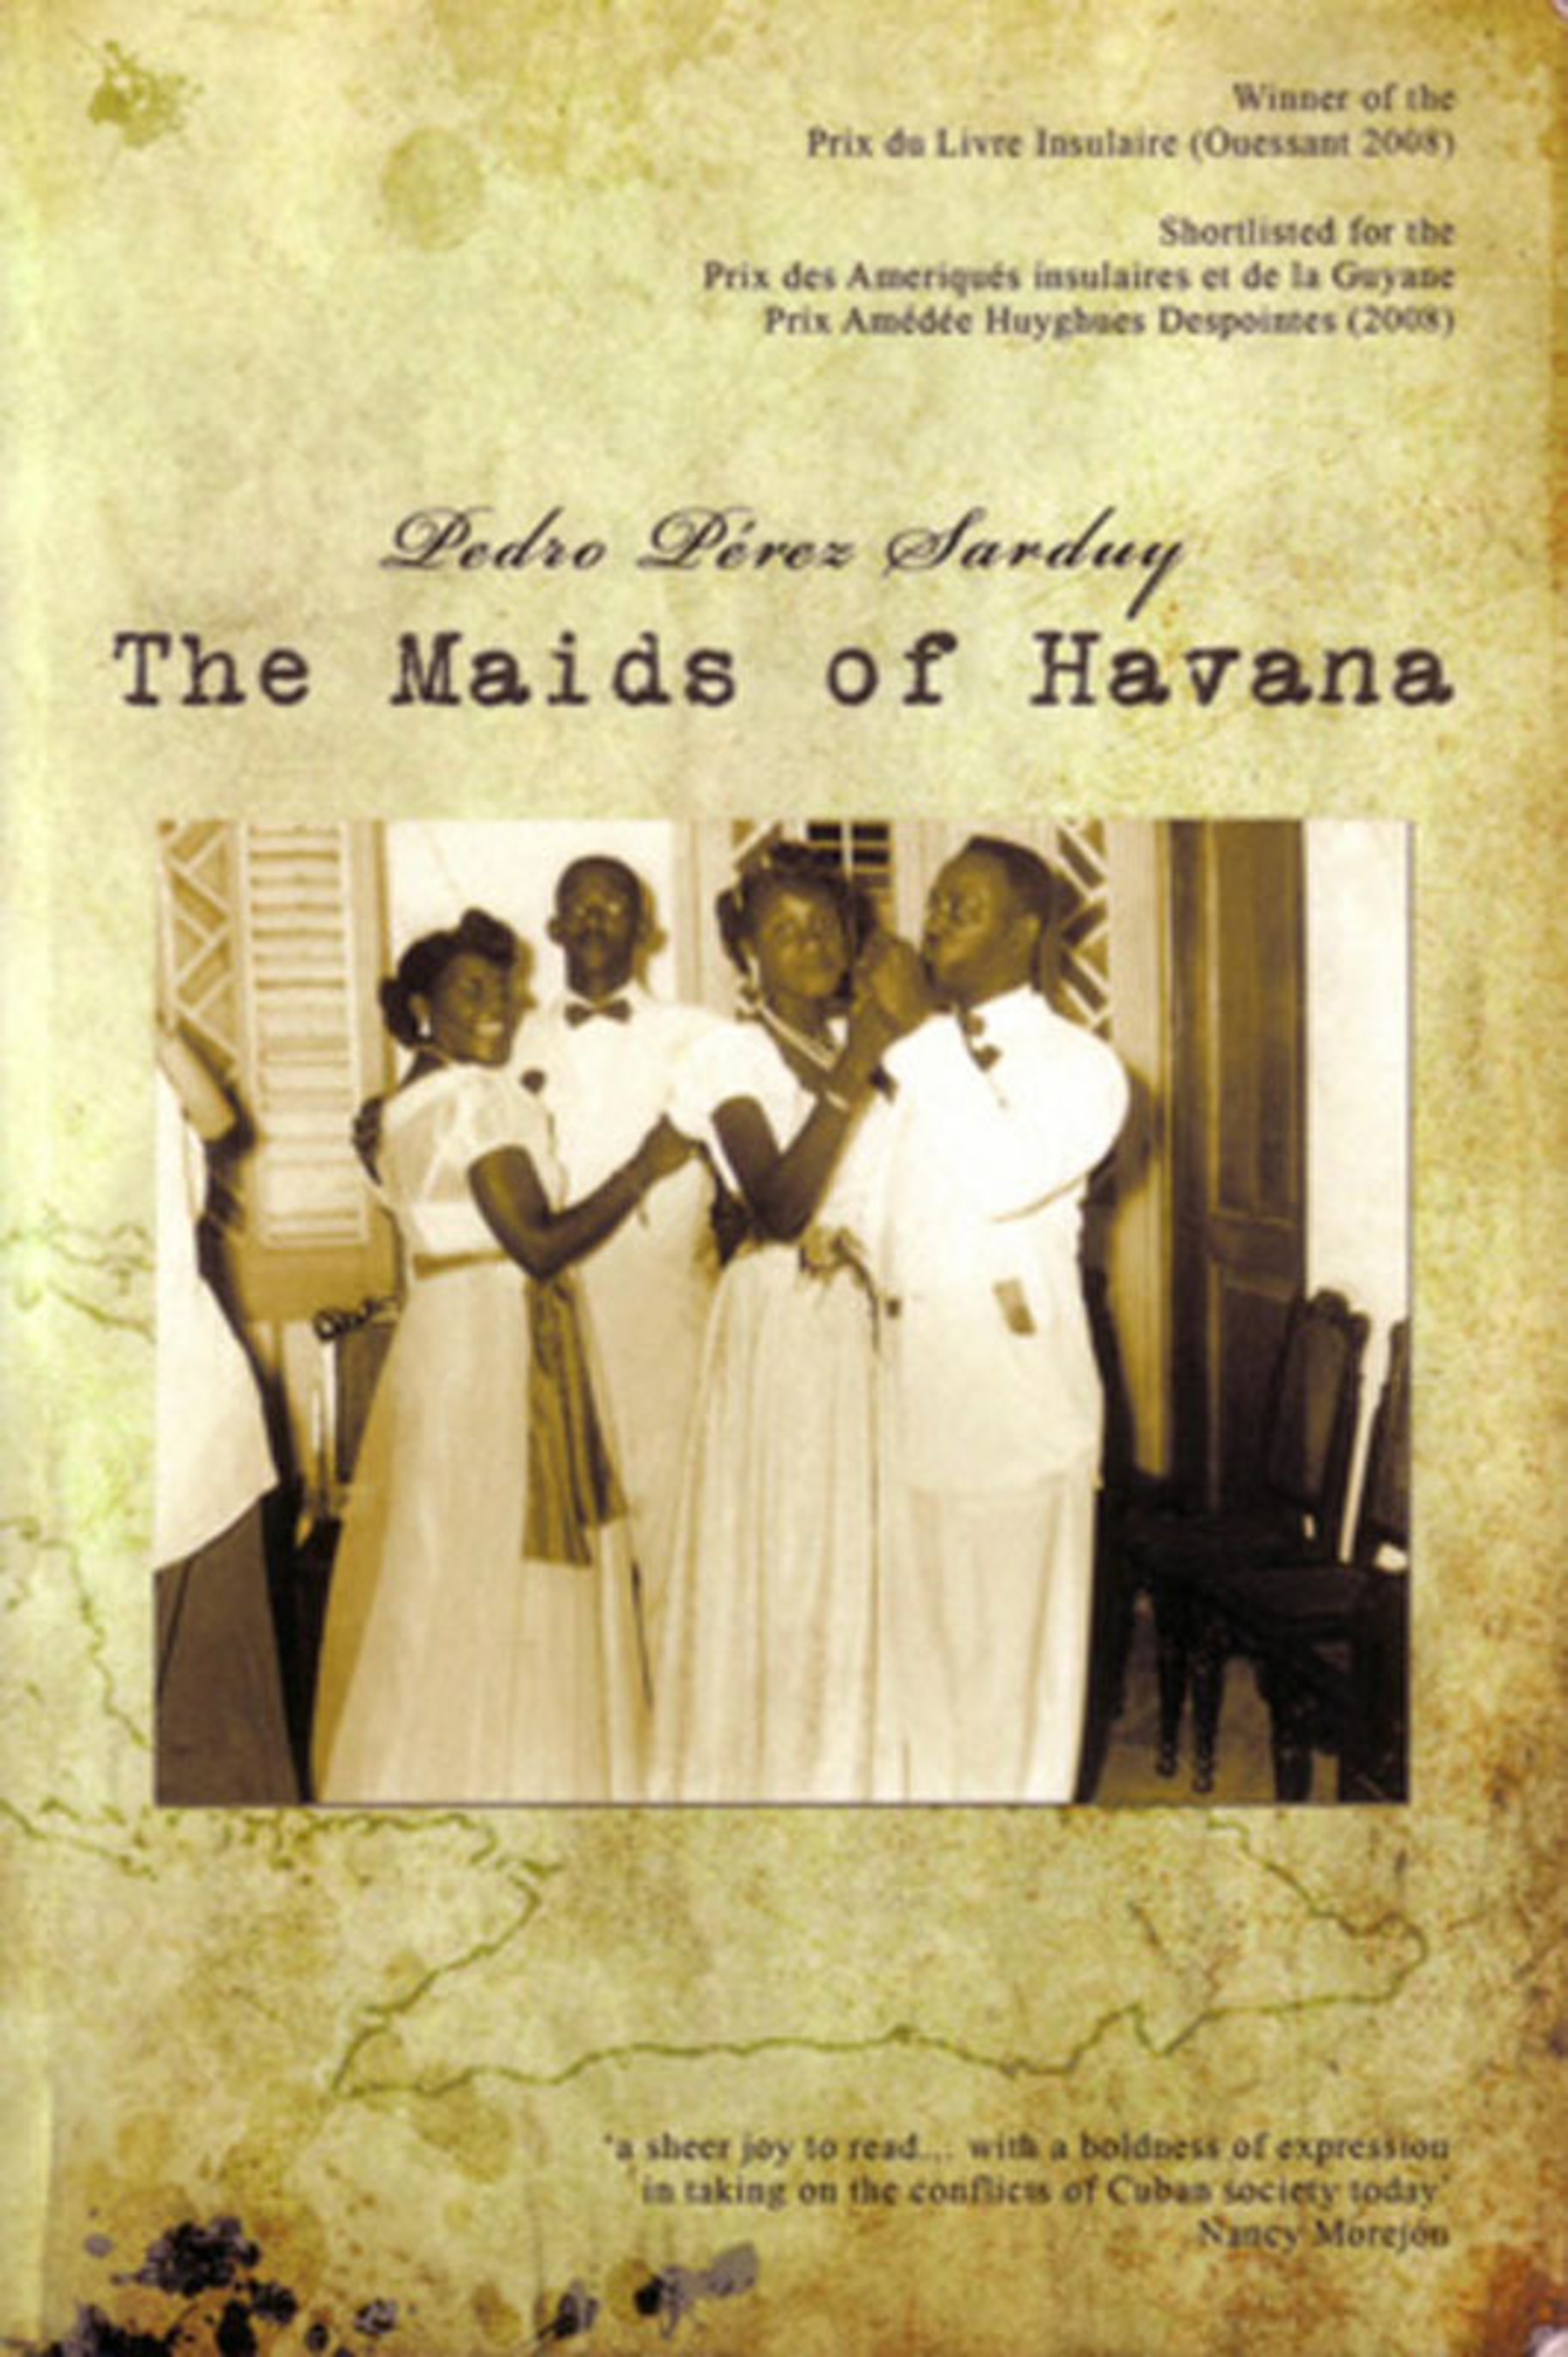 Mylo Carbia to Write Script for Maids of Havana. (PRNewsFoto/Zohar Films) (PRNewsFoto/ZOHAR FILMS)